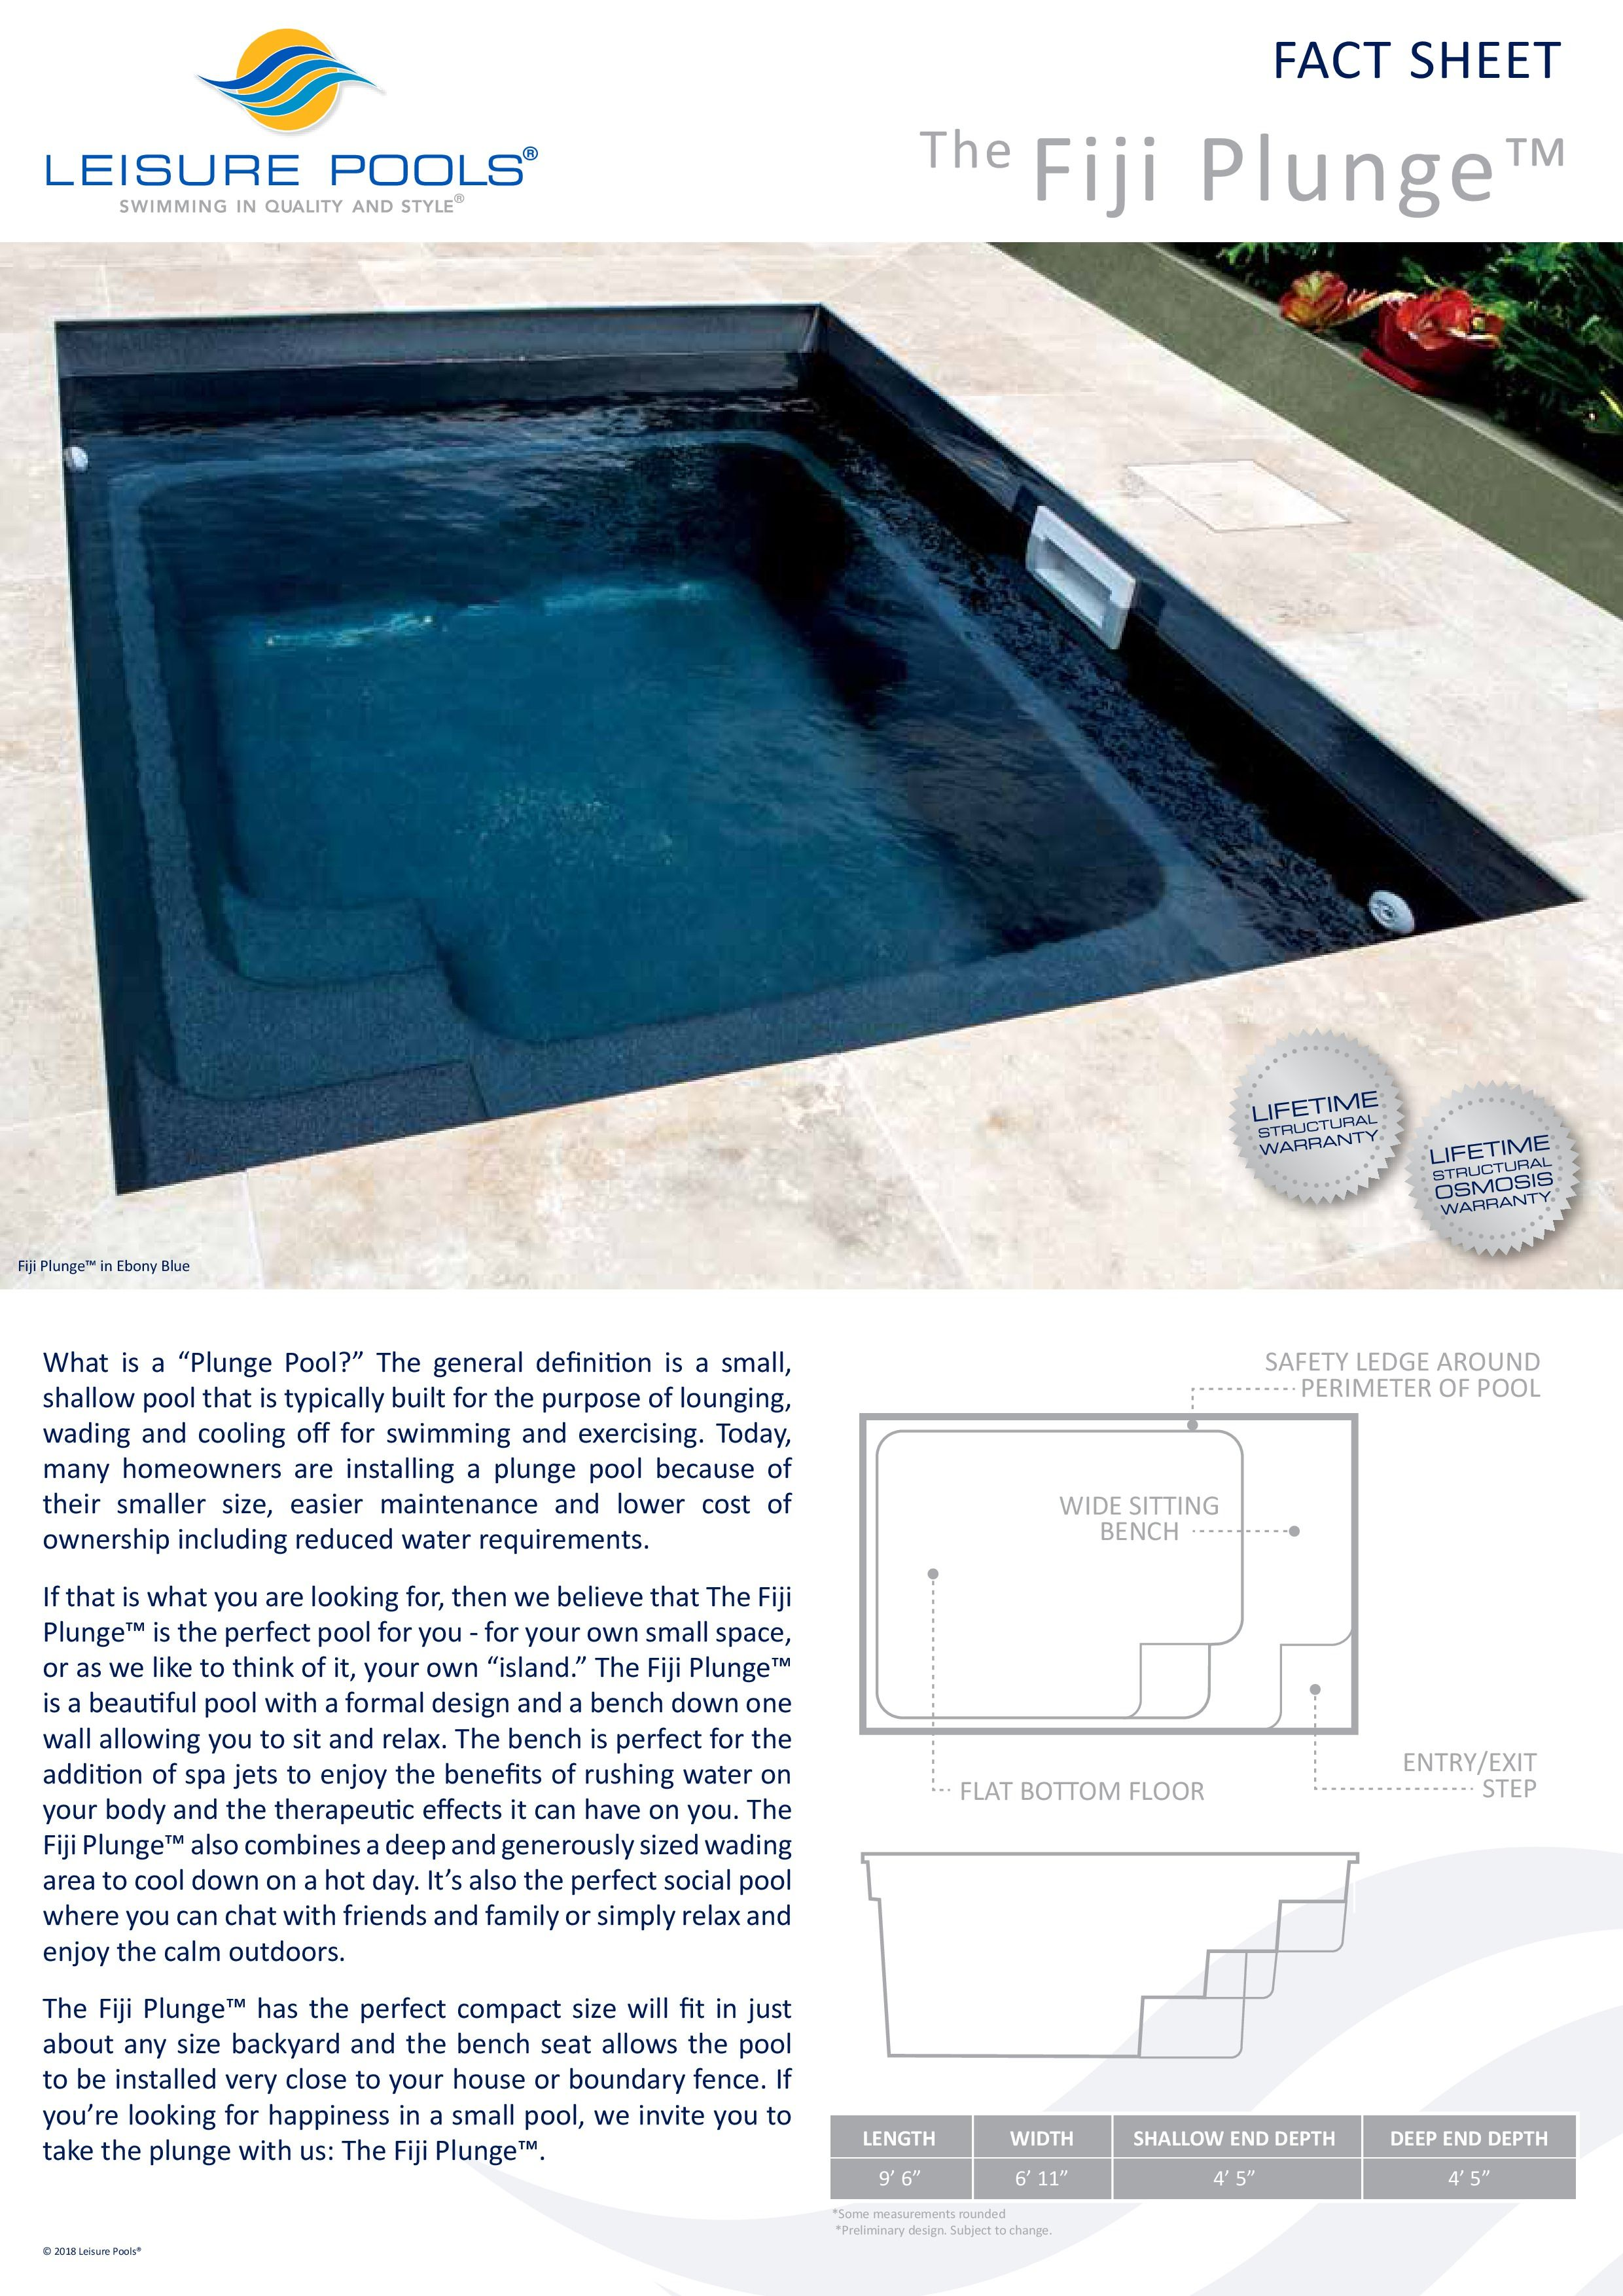 Leisure Pools Is Now Offering The Fiji Plunge Composite Fiberglass Swimming Pool It Measures 10 Feet By 7 Leisure Pools Plunge Pool Fiberglass Swimming Pools